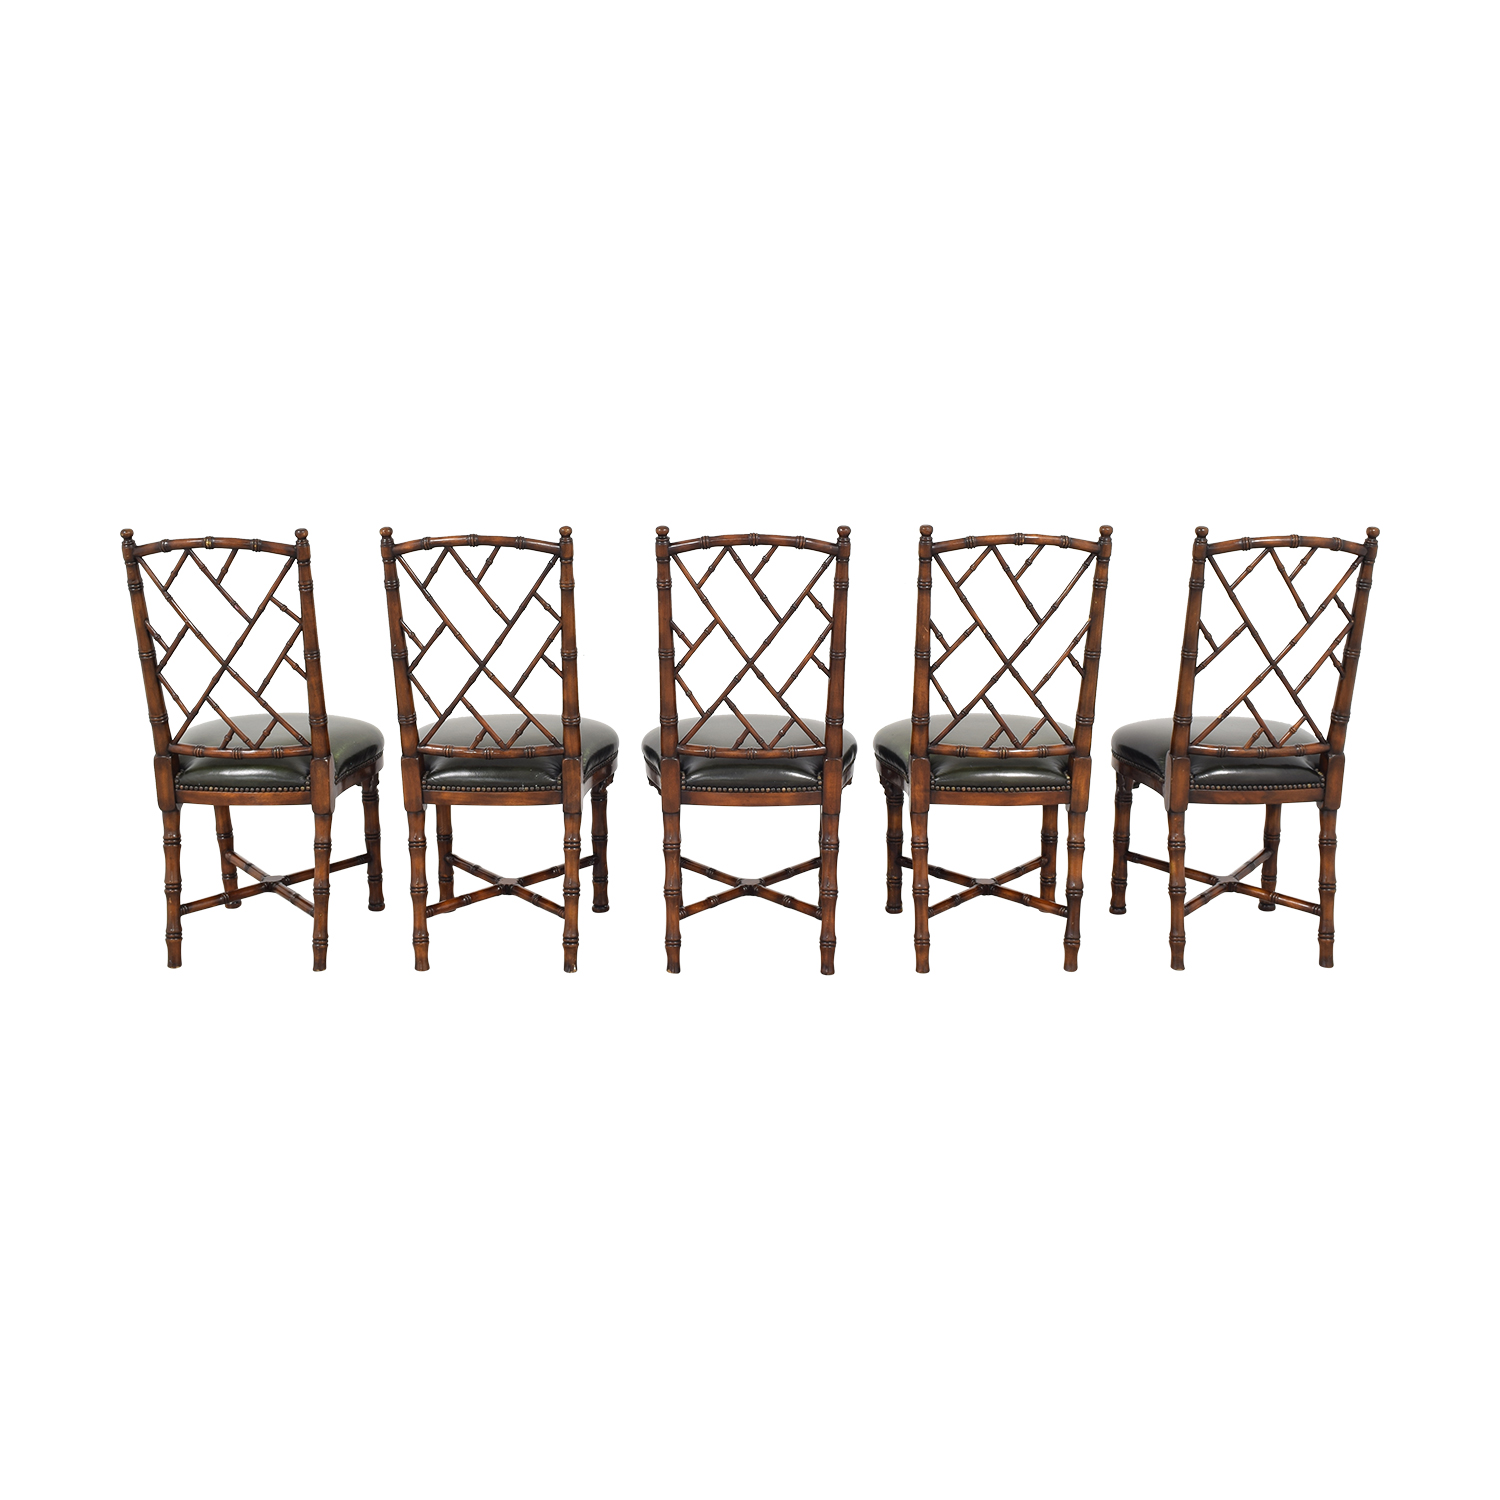 Theodore Alexander Trellis Side Chairs / Dining Chairs